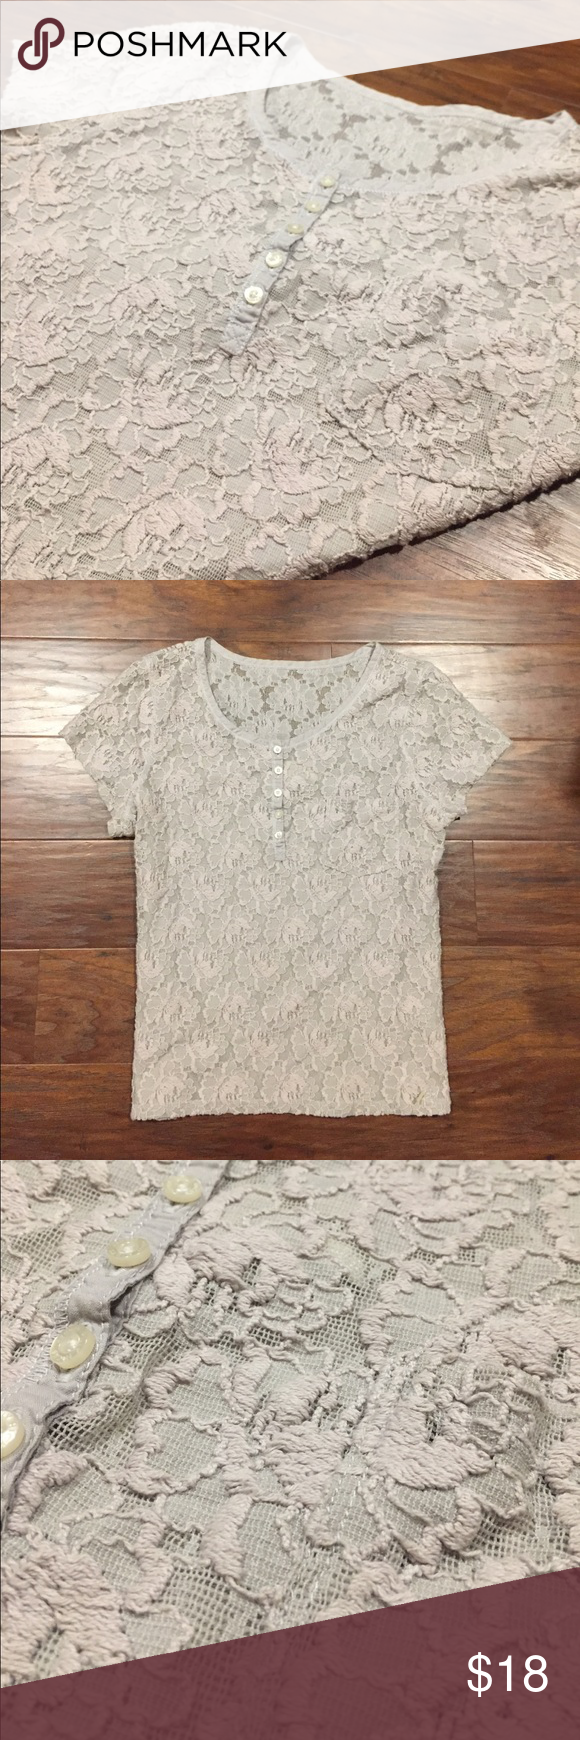 Floral Blouse BEAUTIFUL gray floral Blouse, half buttoned from Gilly Hicks. Beautiful Blouse and very flattering! Selling because it's too big on me (I'm now a size small) Gilly Hicks Tops Blouses